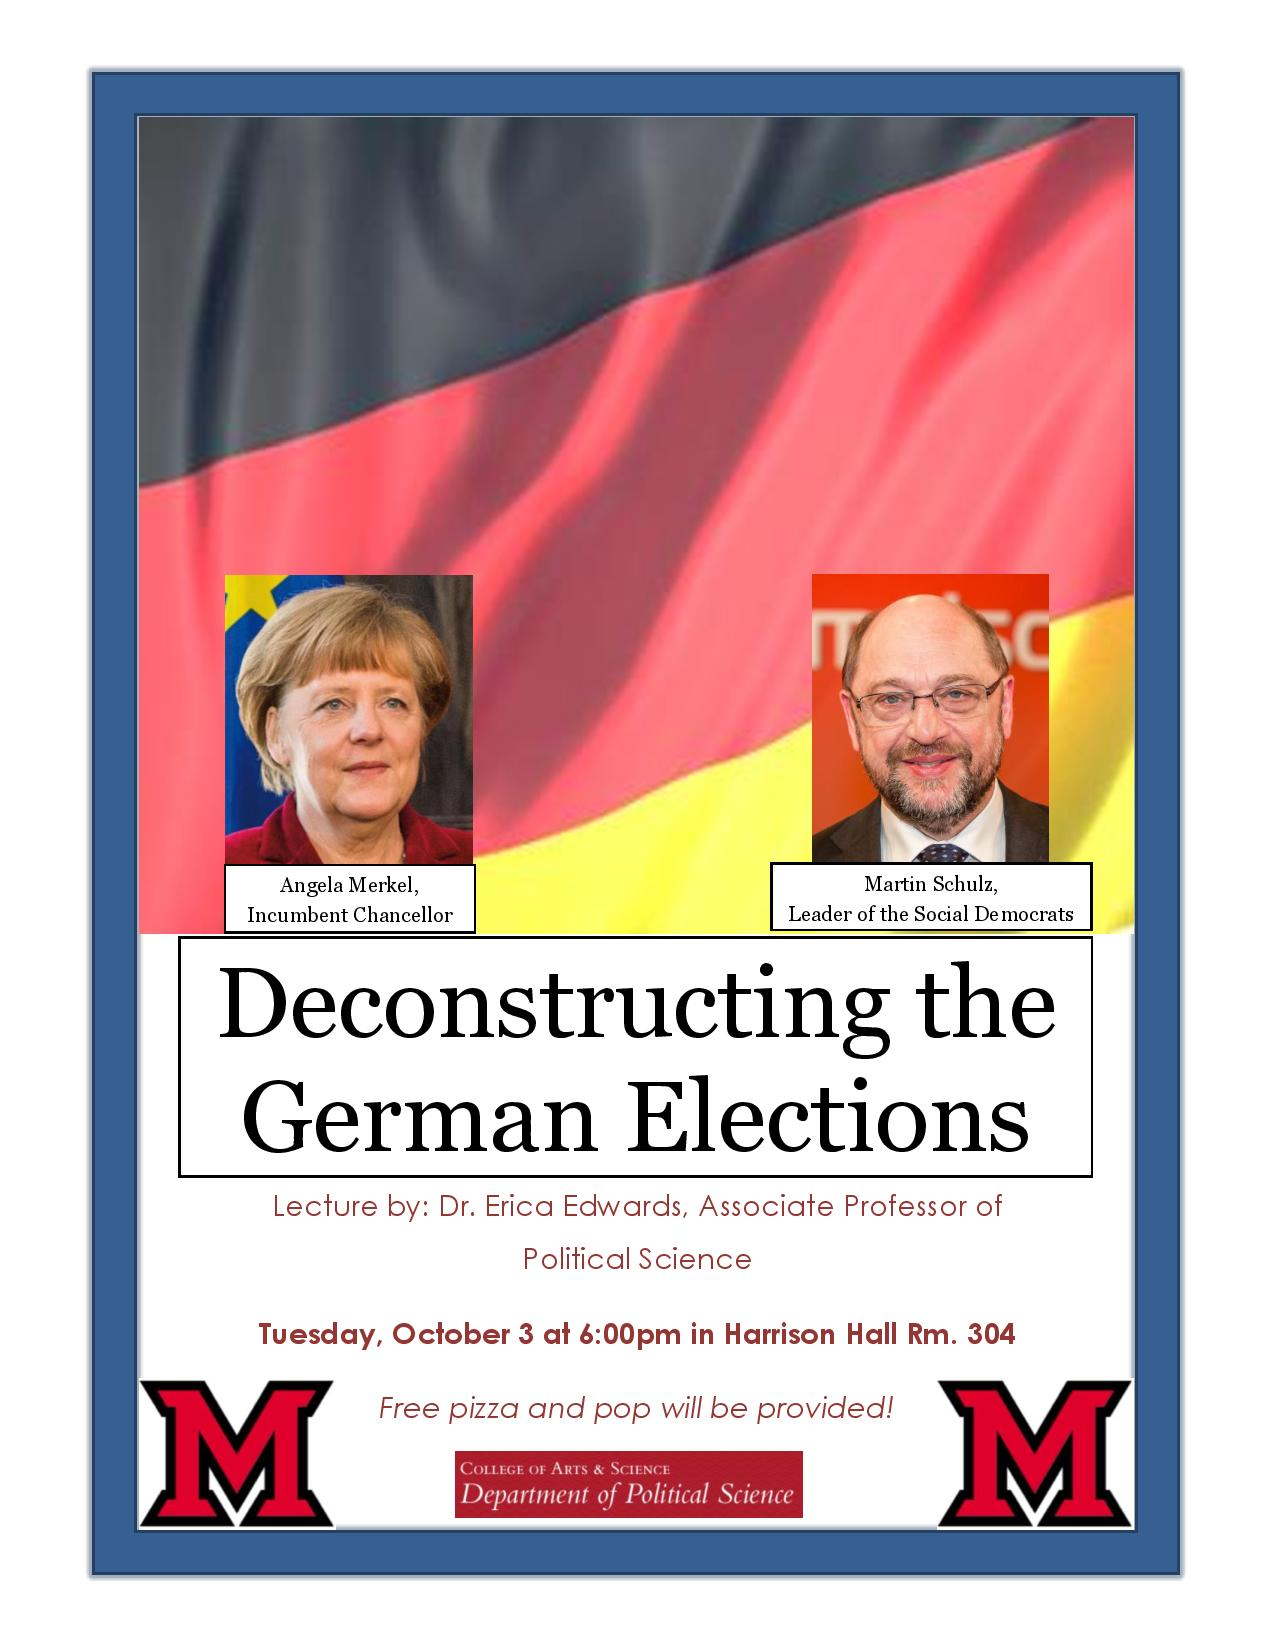 Deconstructing the German Elections, lecture by Dr. Erica Edwards October 3 at 6:00 in Harrison 304